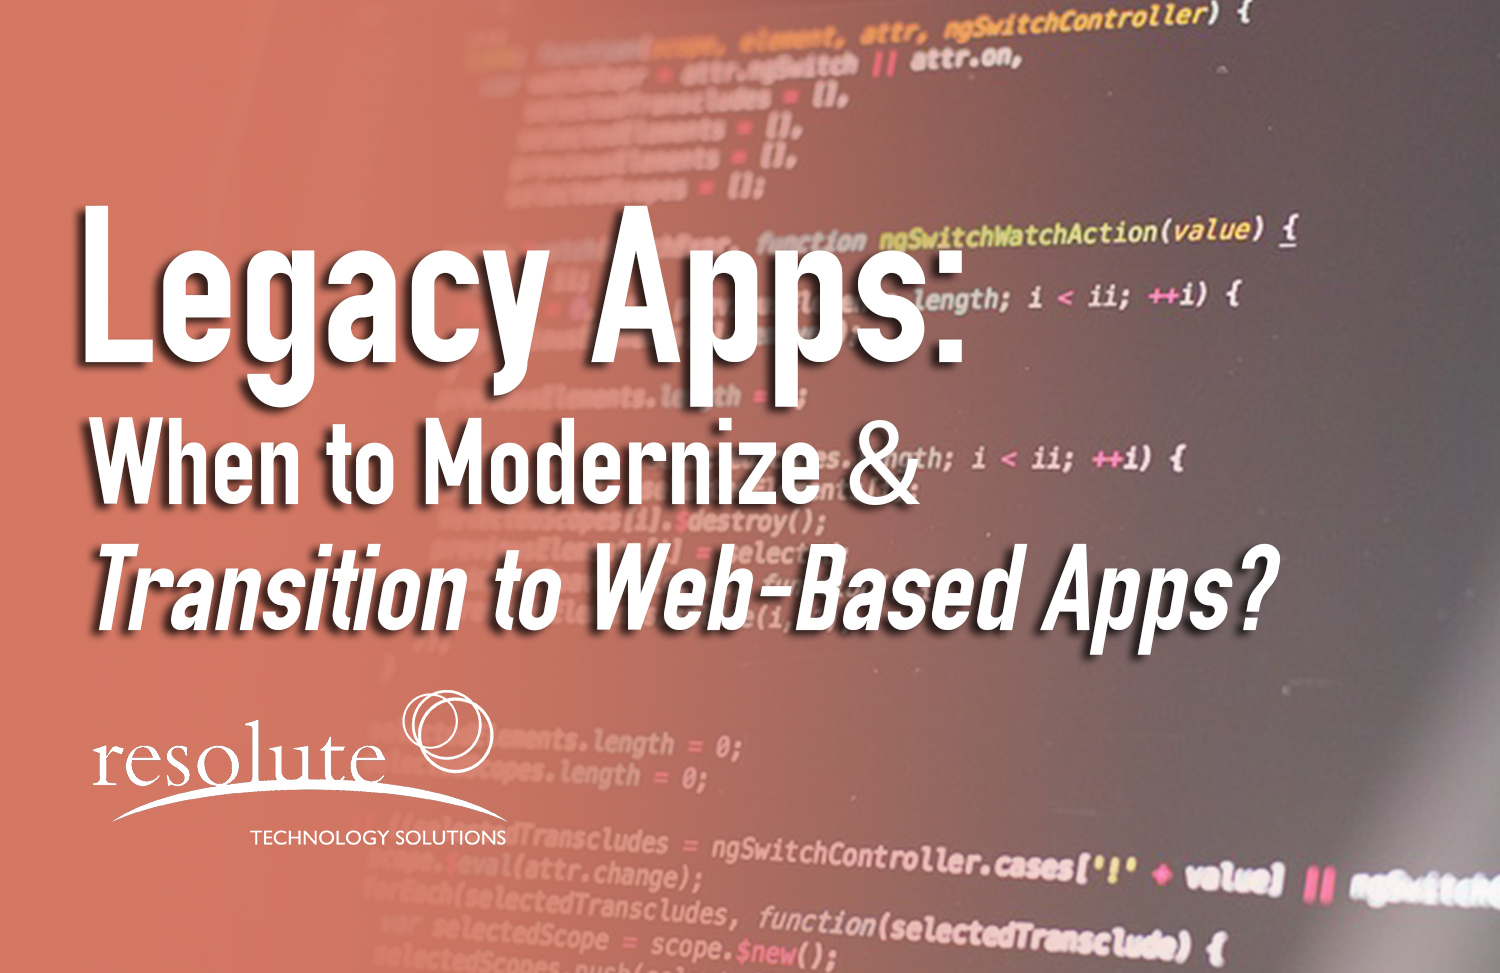 Legacy Apps: When to Modernize & Transition to Web-Based Apps?